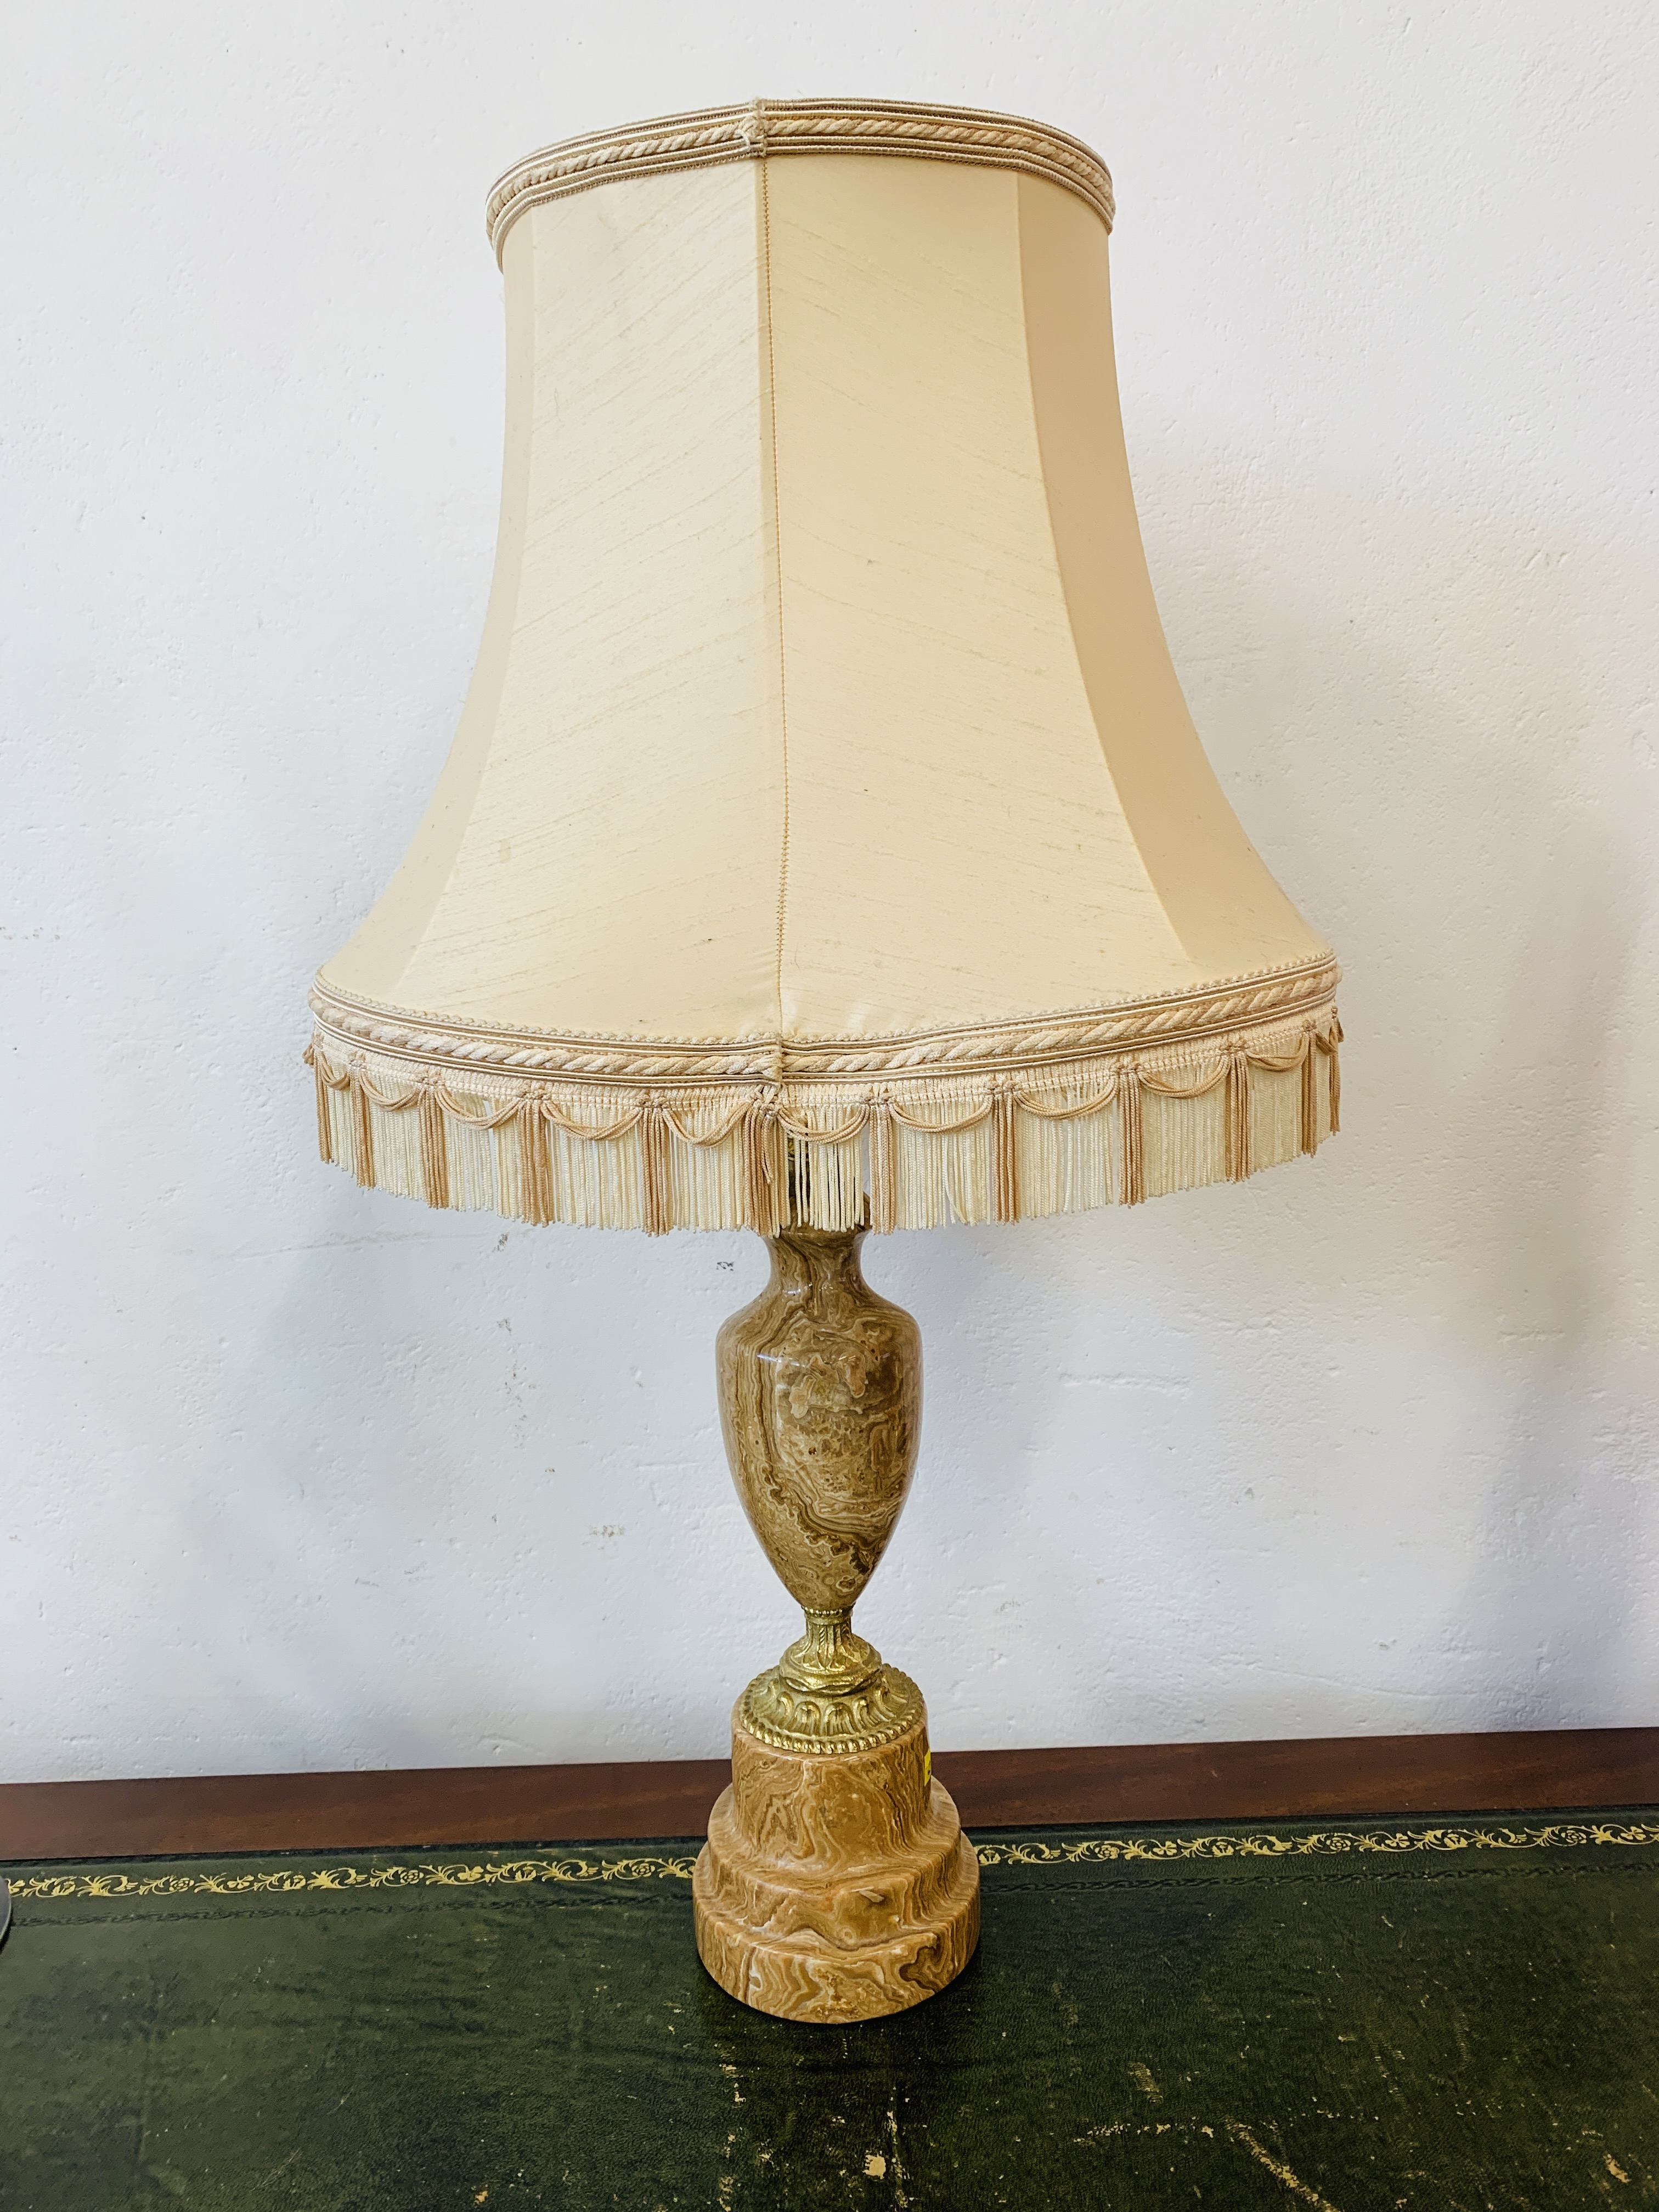 A GOOD QUALITY MARBLE TABLE LAMP ALONG WITH A PAIR OF MODERN POLISHED METAL TABLE LAMPS - SOLD AS - Image 2 of 12